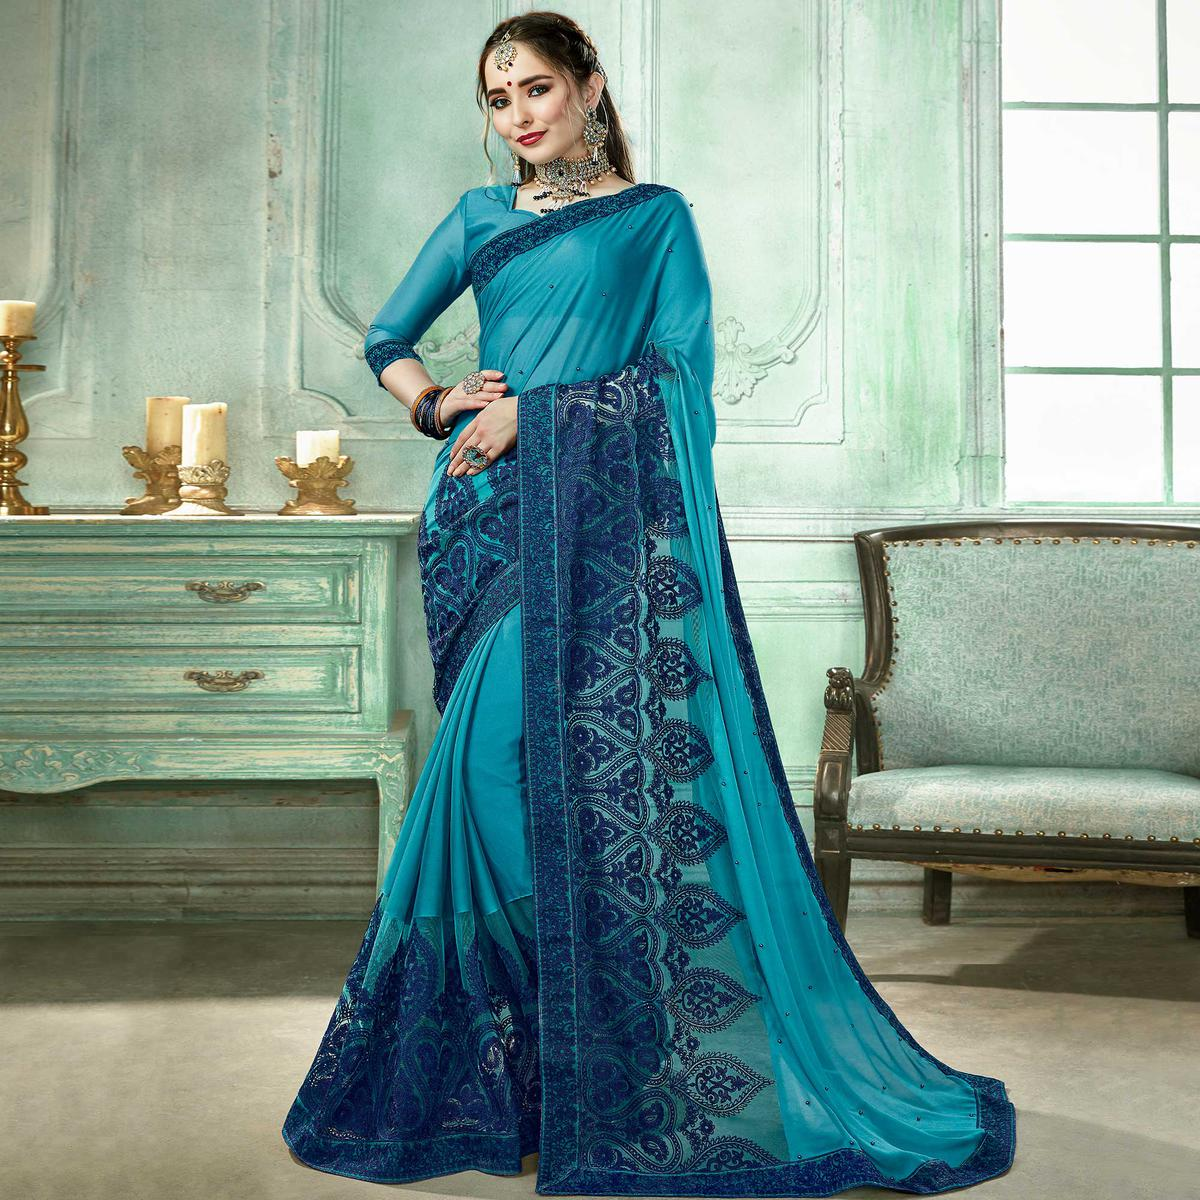 Eye-catching Sky Blue Colored Partywear Embroidered Georgette Saree